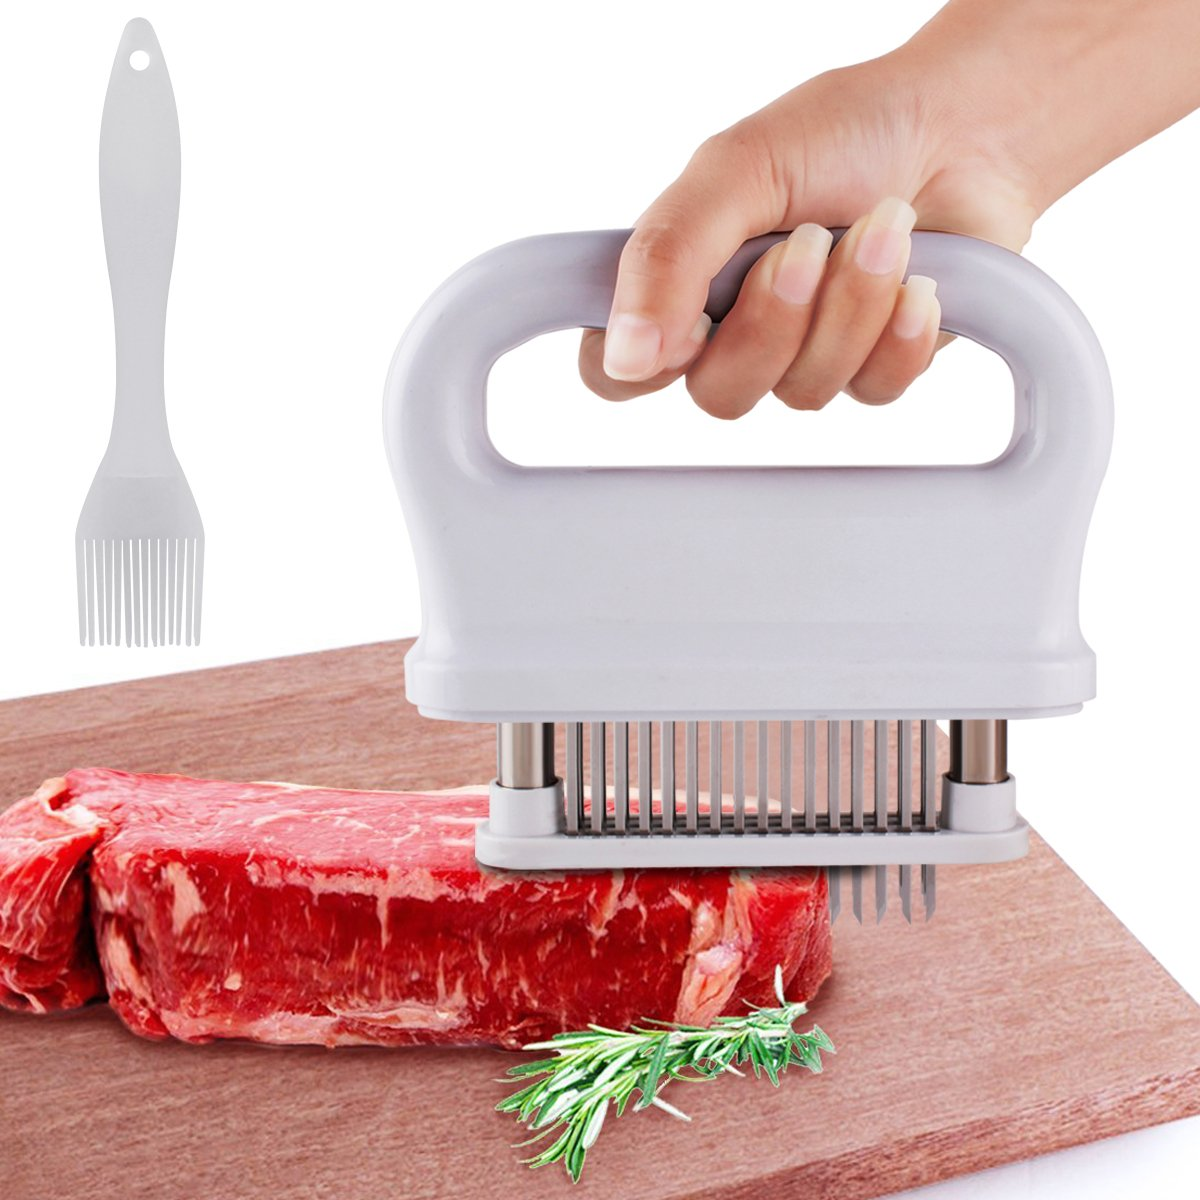 Kitchen Meat Tenderizer 48 Stainless Steel Needle Blades Blade Tenderizer Home Meat Tenderizer Tool Kitchen Cooking Tool for Steak Beef Pork Fish Chickens (White)